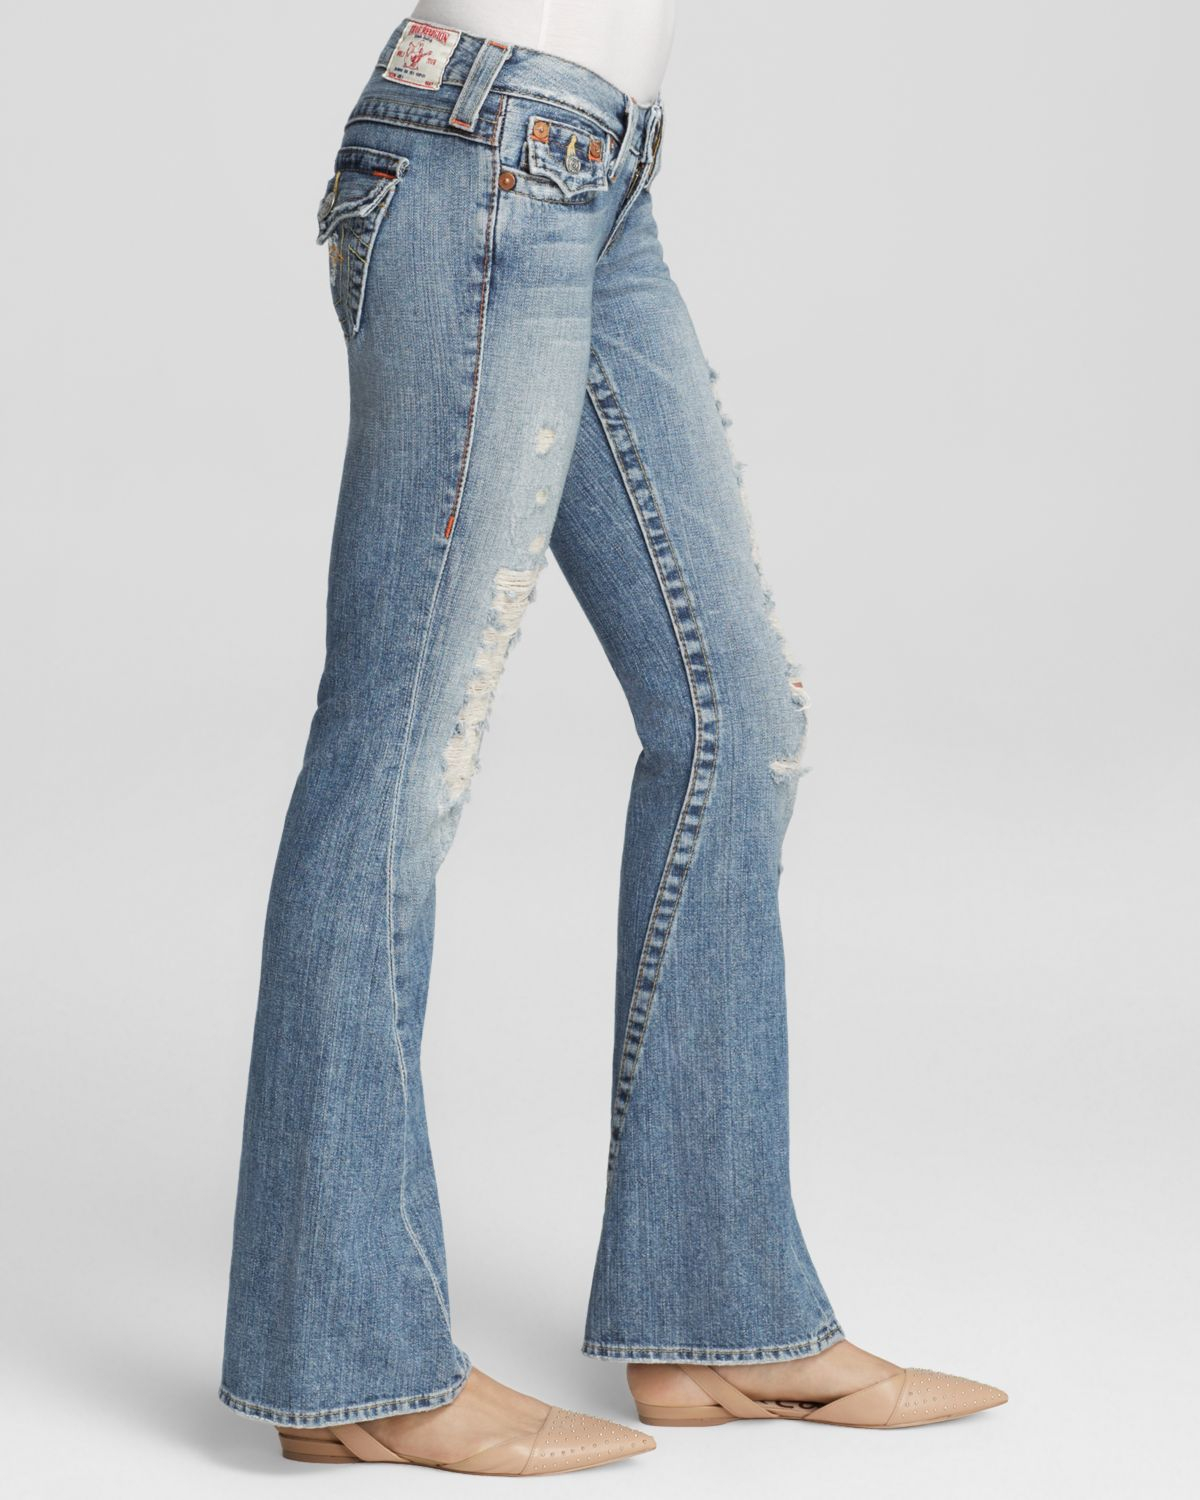 True religion Joey Original Low Rise Flare Jeans In Destroyed in ...